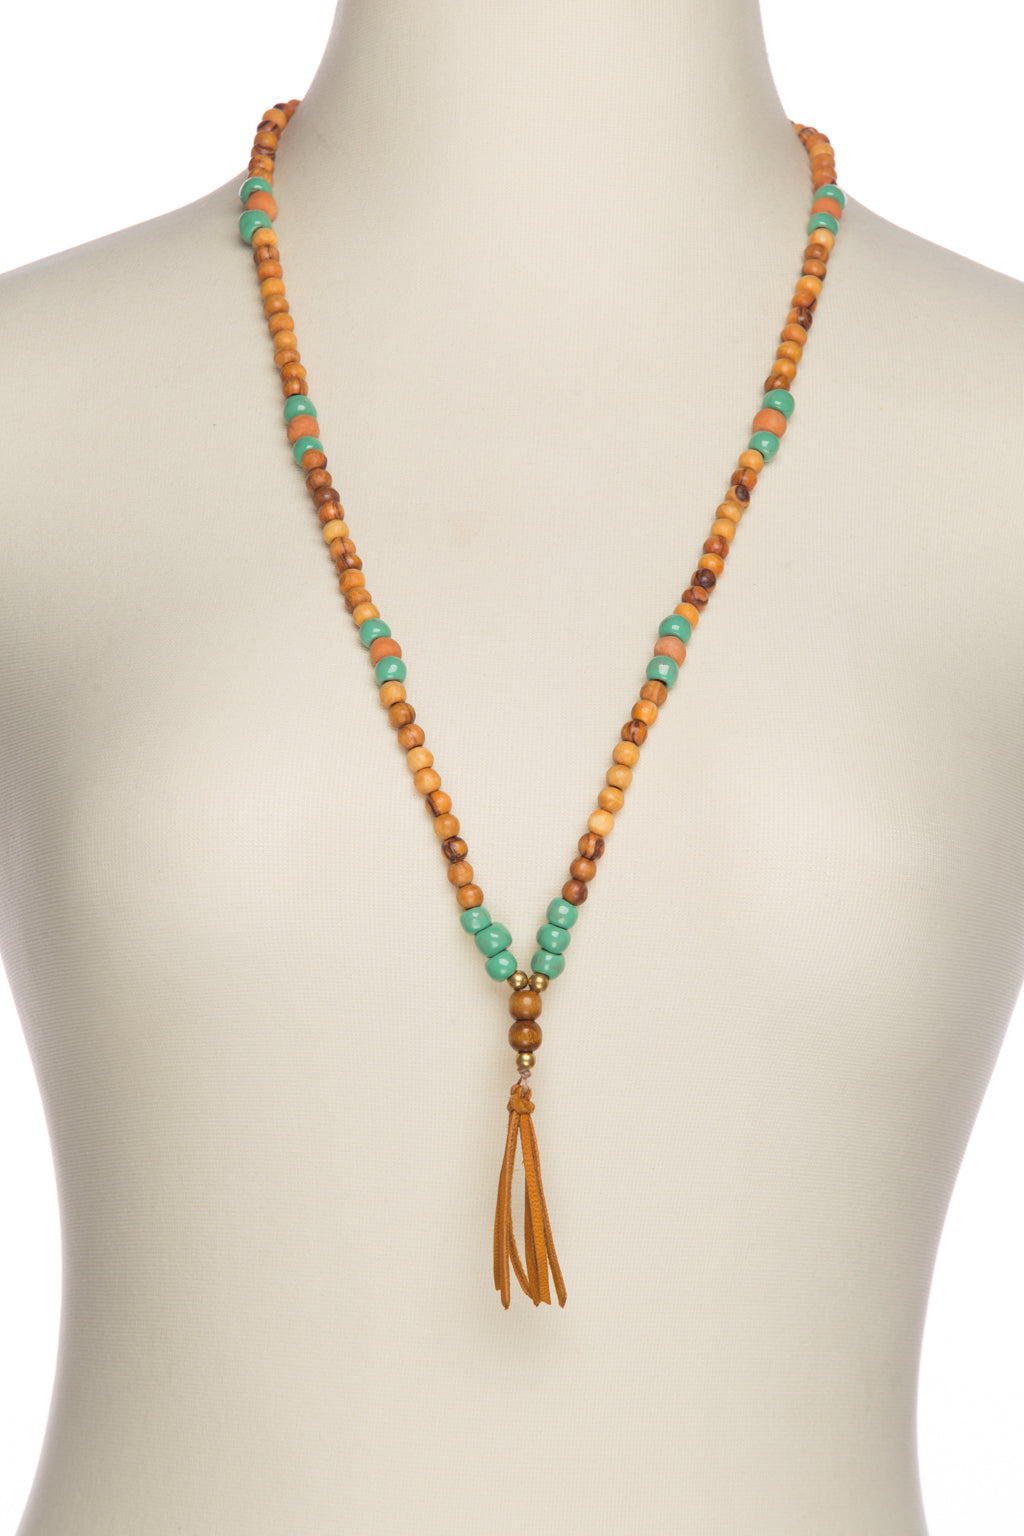 Diffuser Necklace - Mint & Wood Tassel